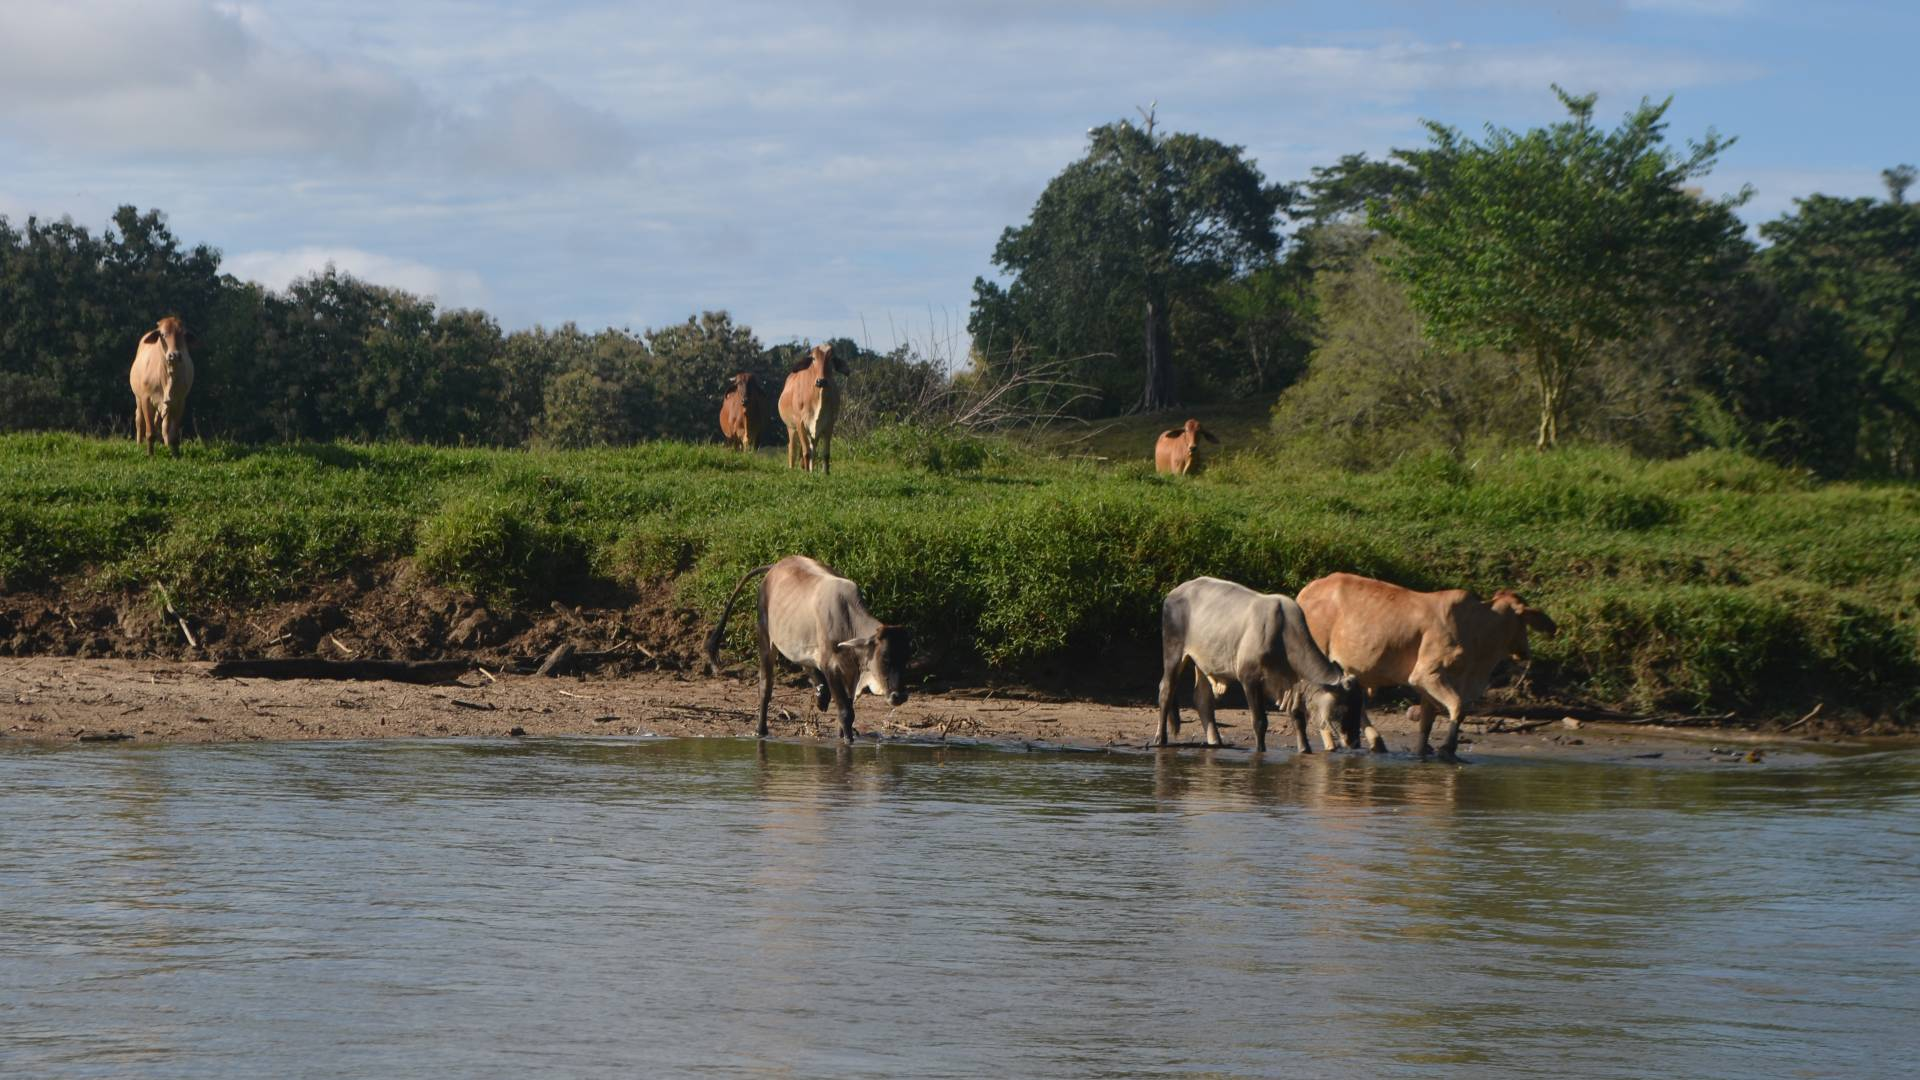 Cows standing along shoreline and in river drinking